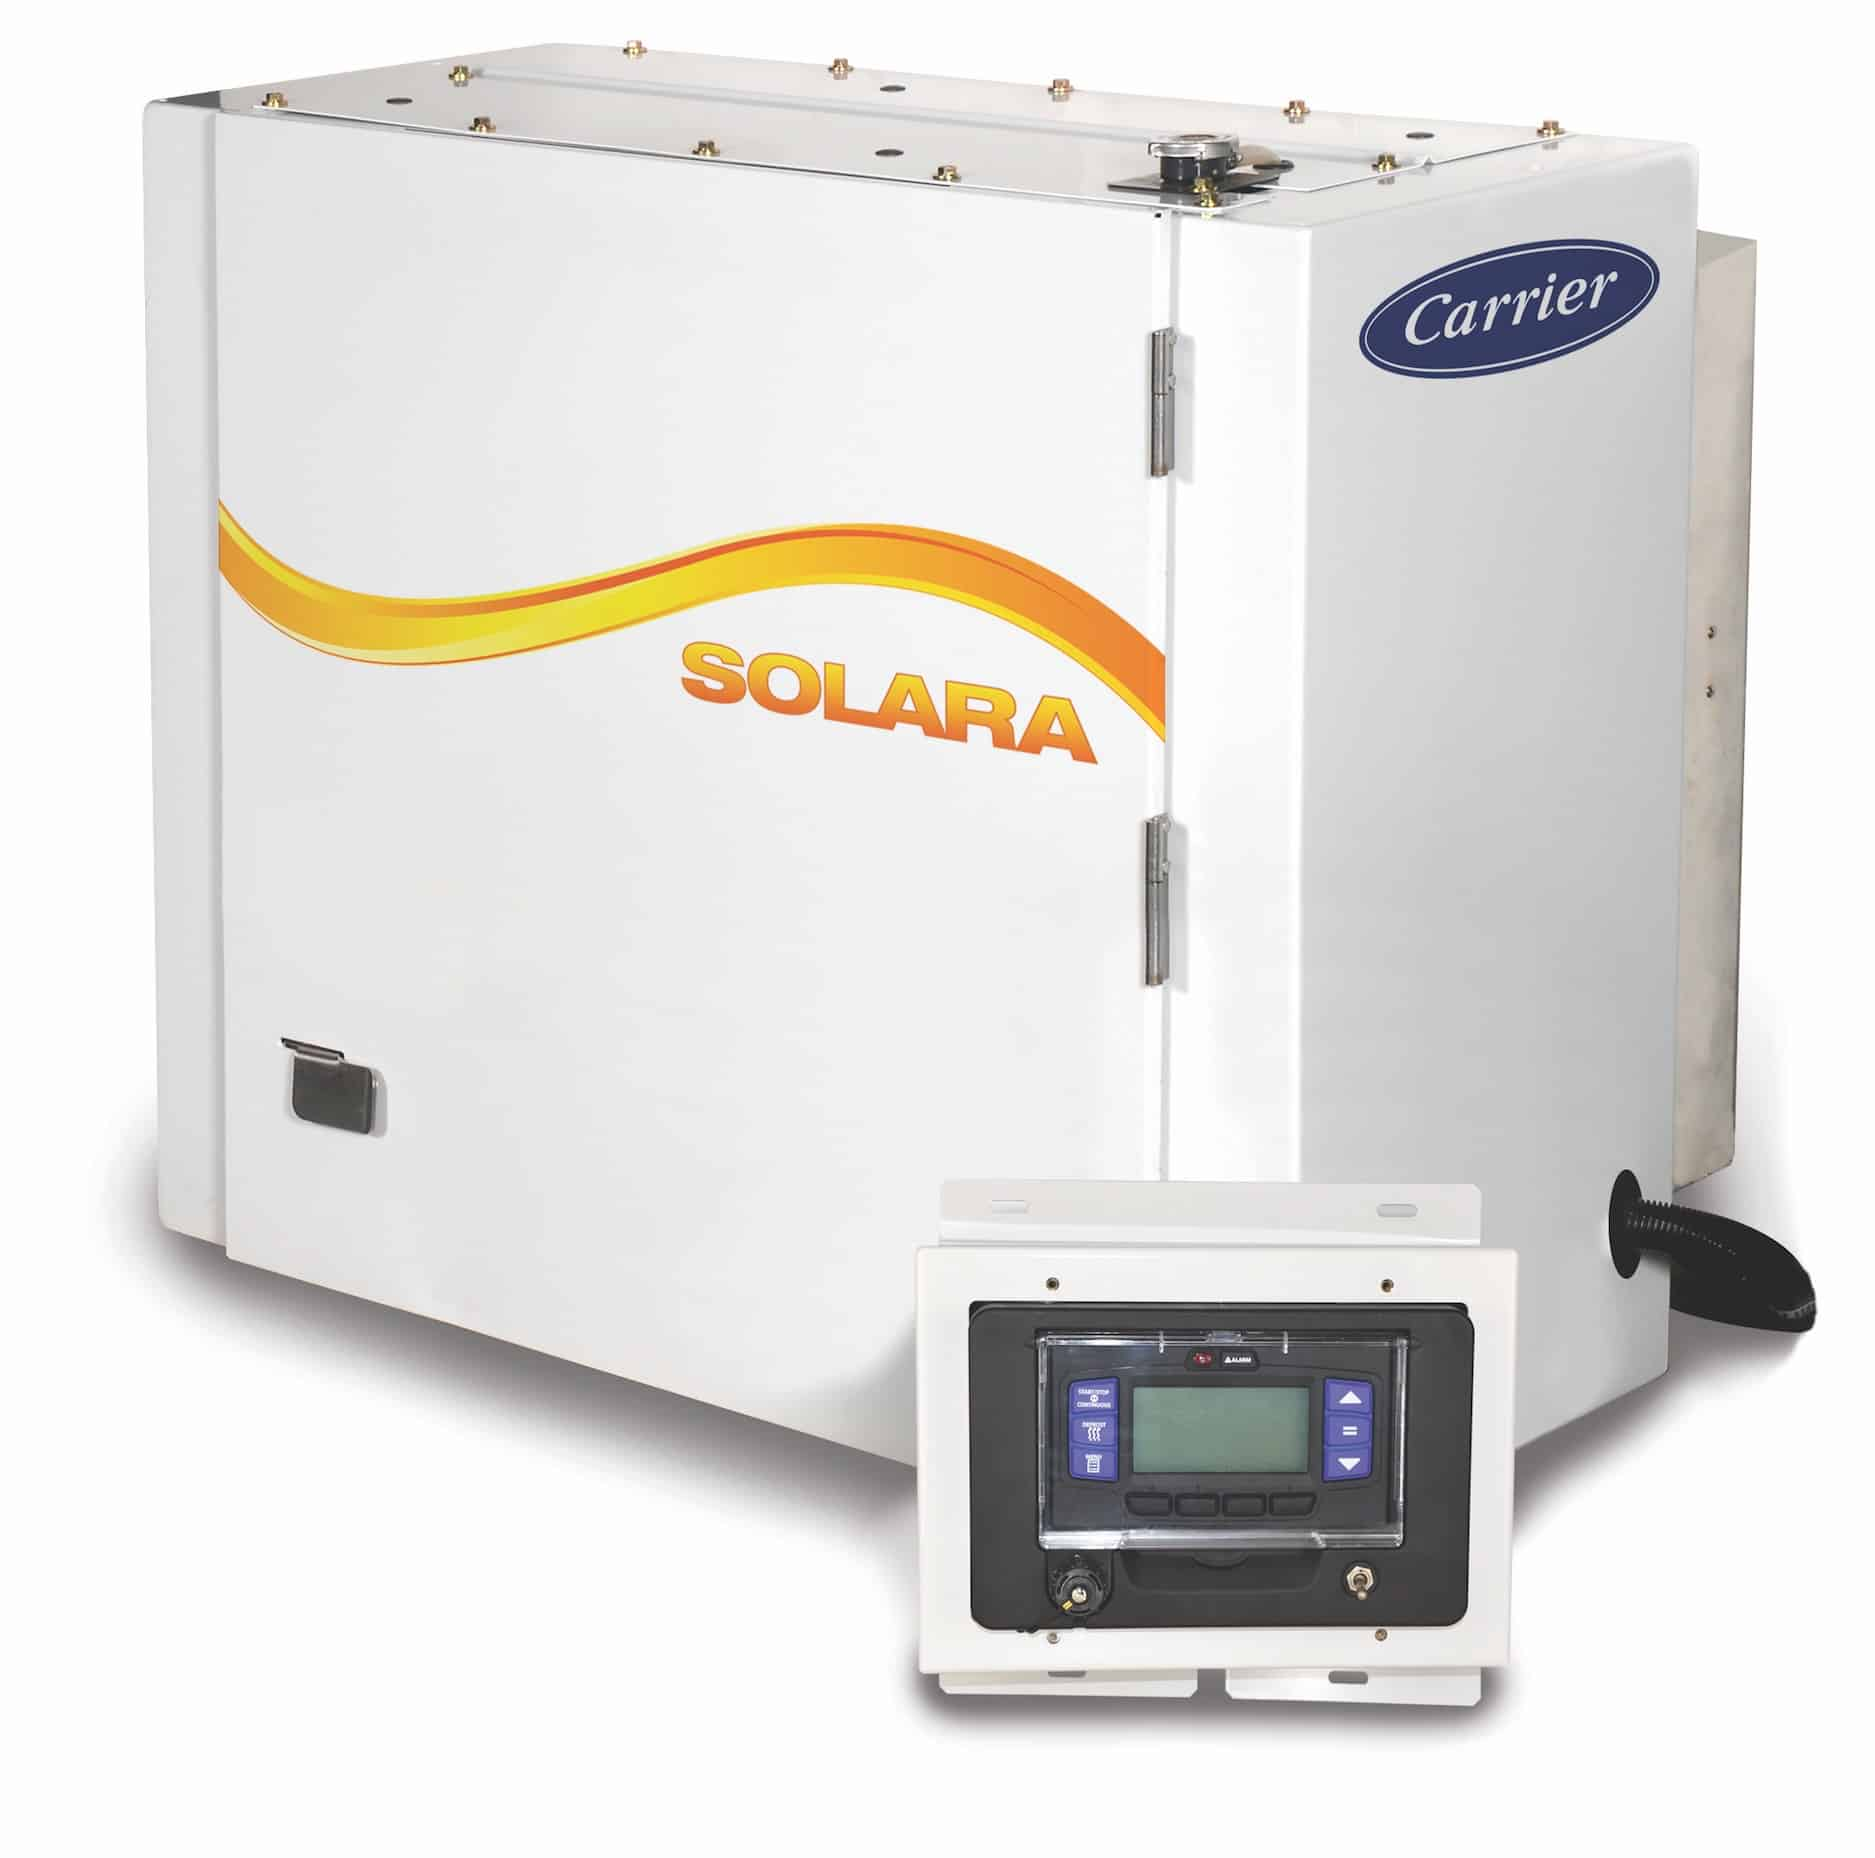 Carrier Transicold Enhances Solara Heating Unit for Trailers